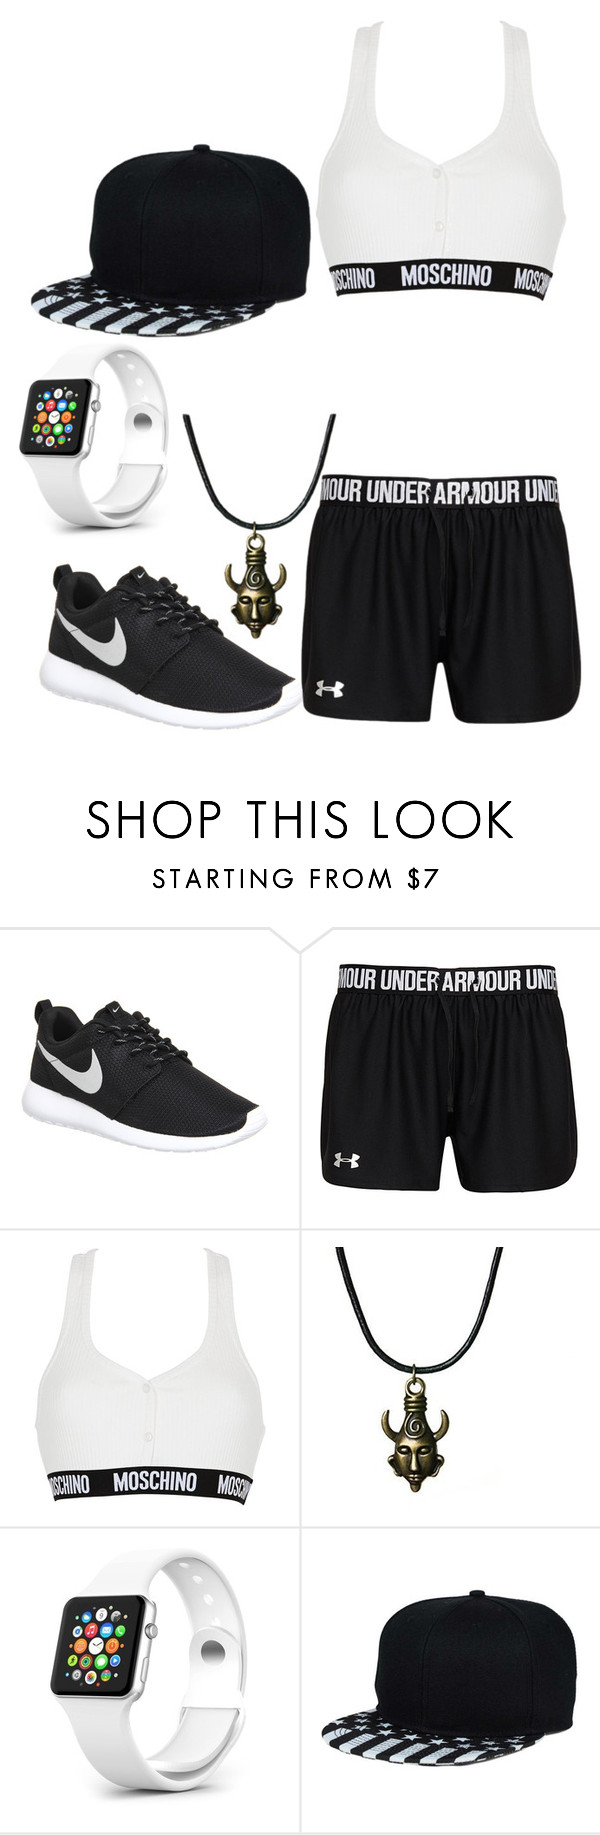 """Untitled #353"" by lean-mean-dean on Polyvore featuring NIKE, Moschino, women's clothing, women, female, woman, misses and juniors"